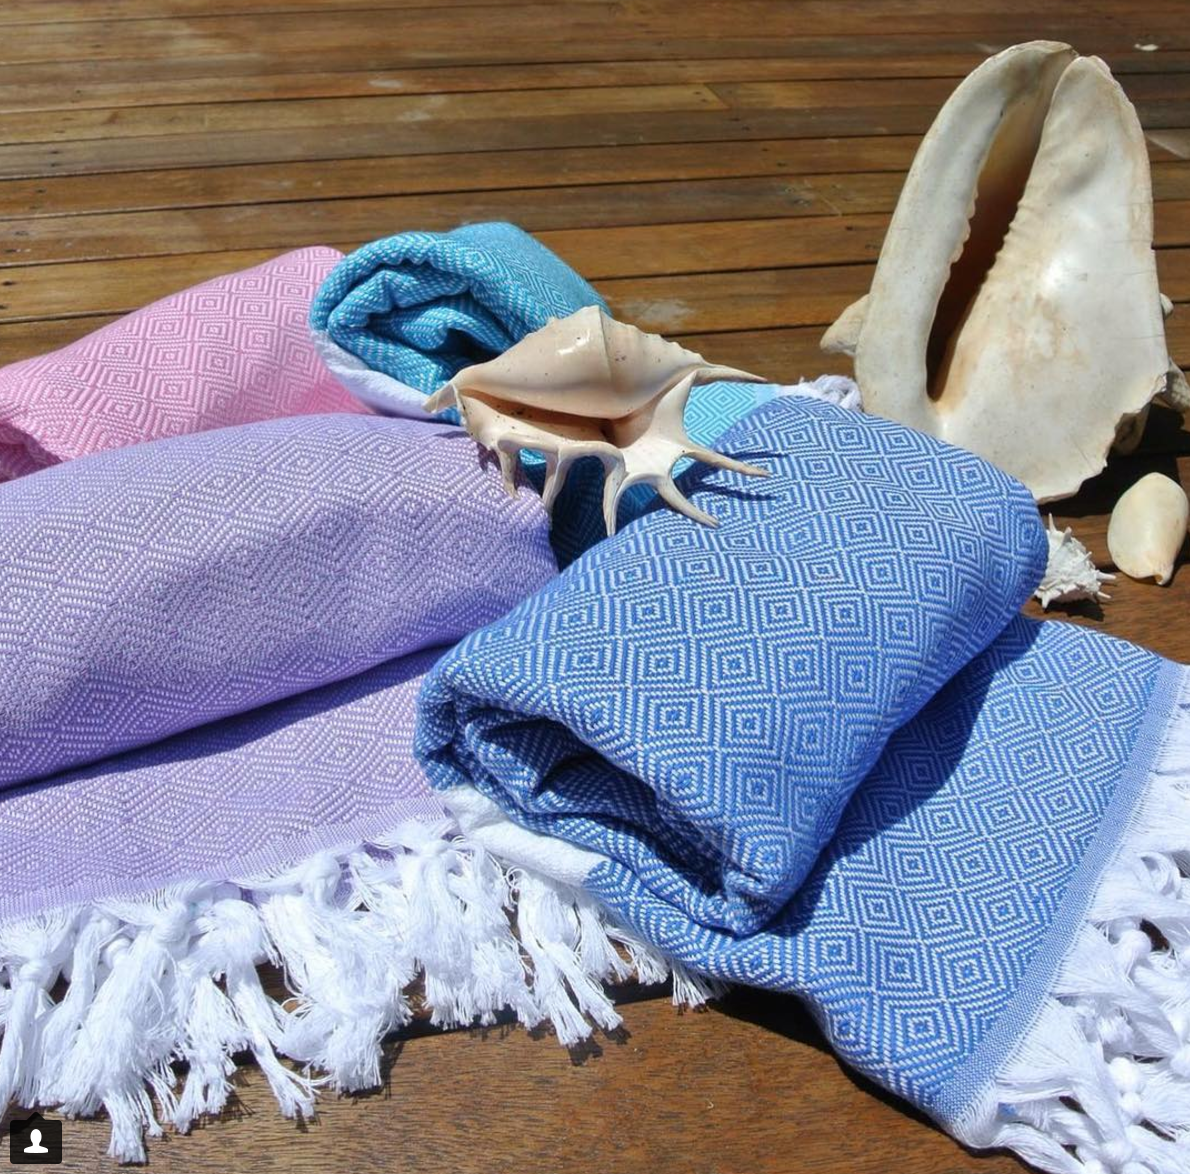 Eski Melbourne - Quality Turkish towels handmade by women's groups in Cappadoccia. 100% natural cotton and bamboo, there are a million uses for this versatile product. We LOVE them!